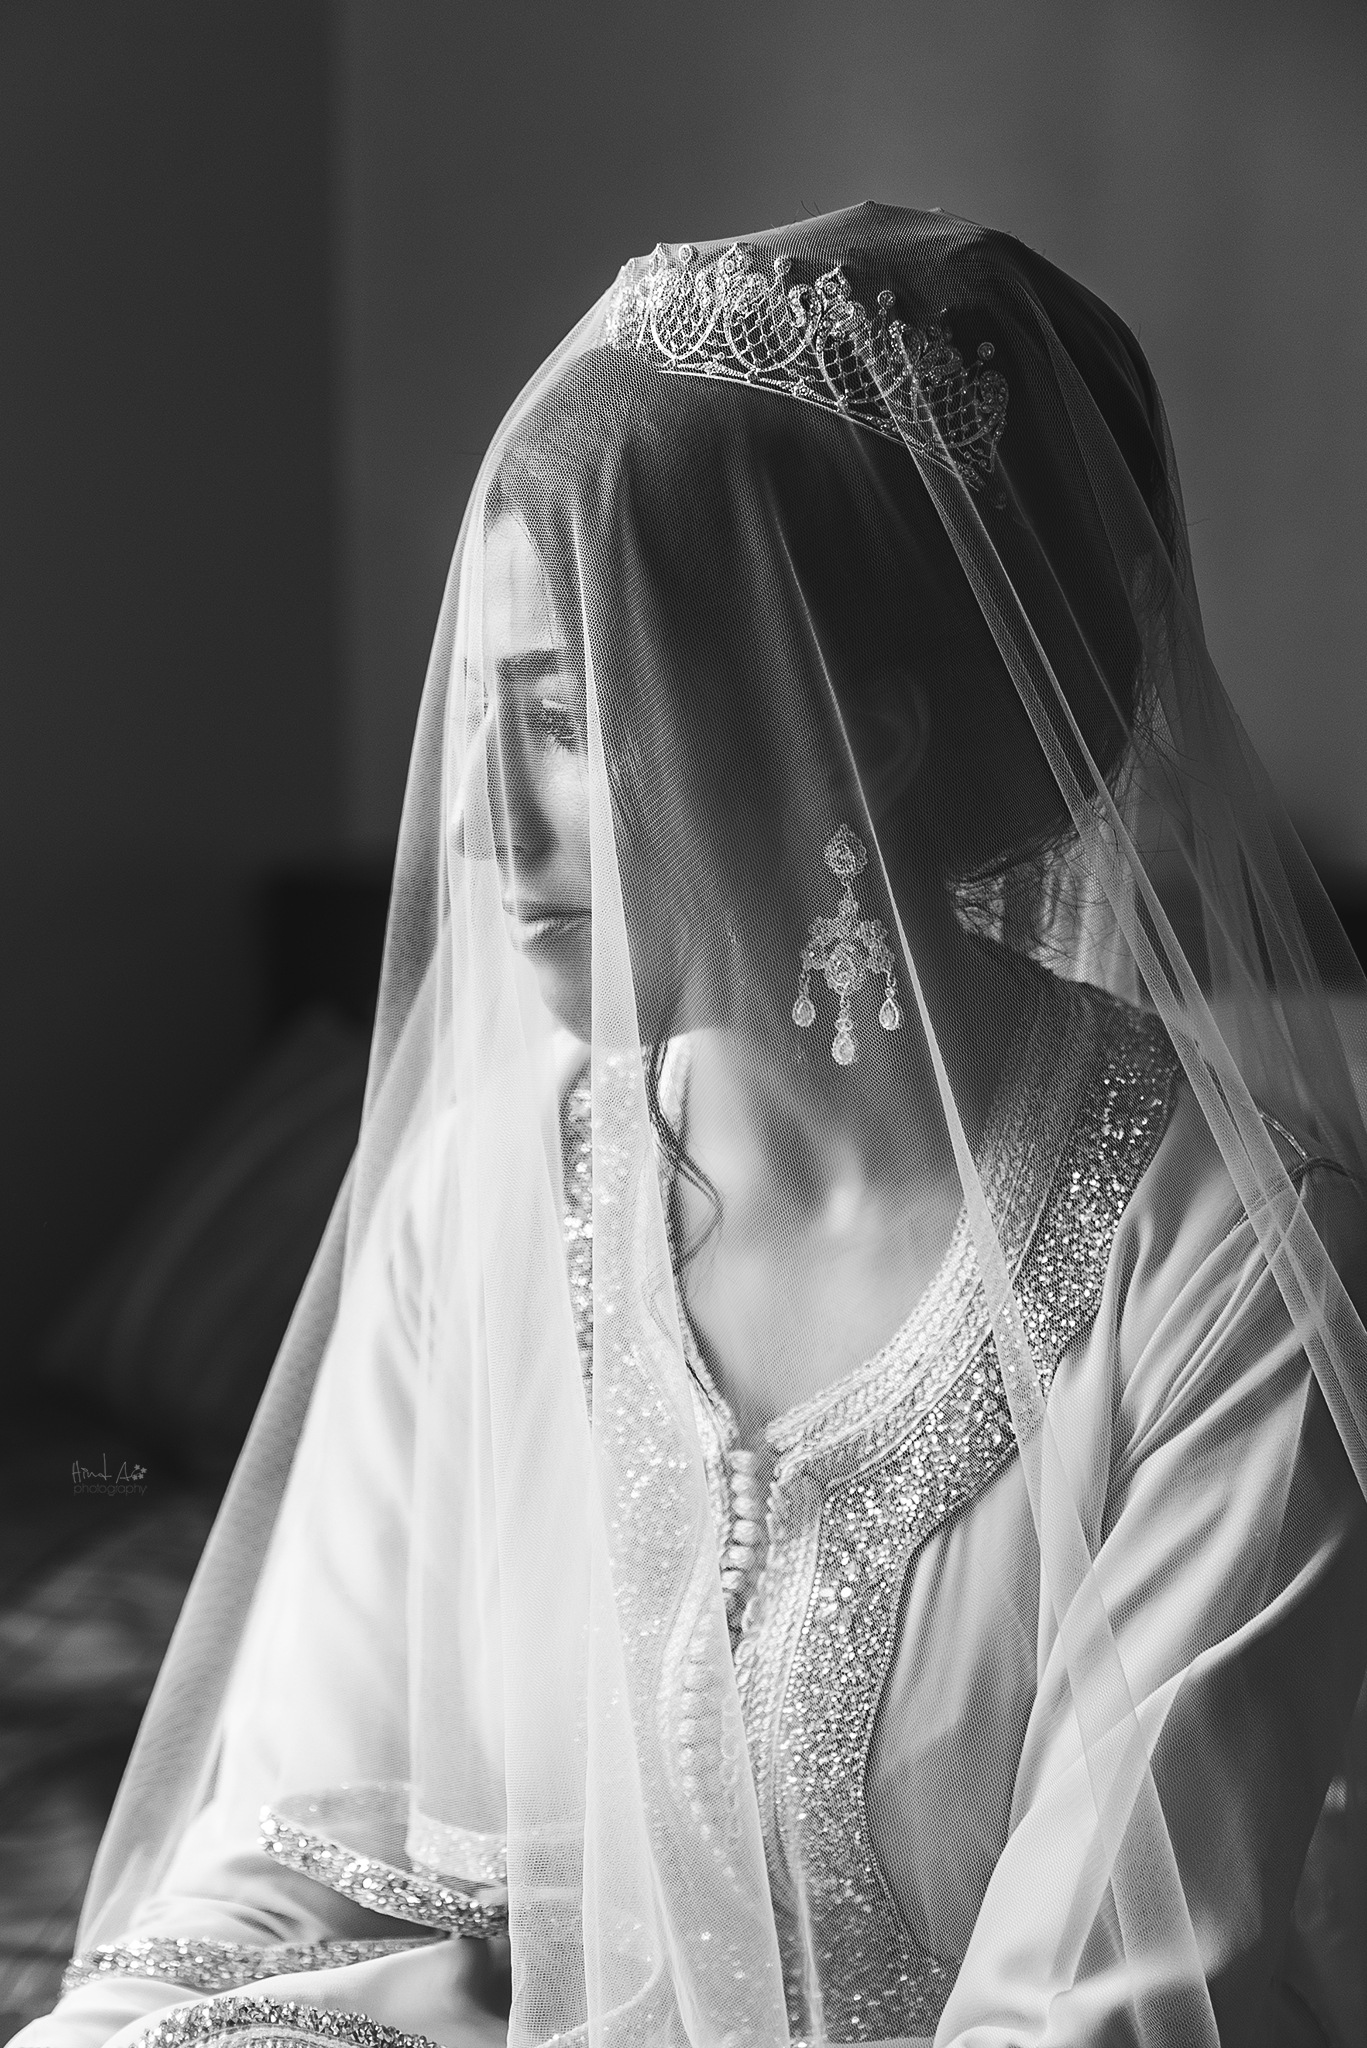 Moroccan bride by Hind Al